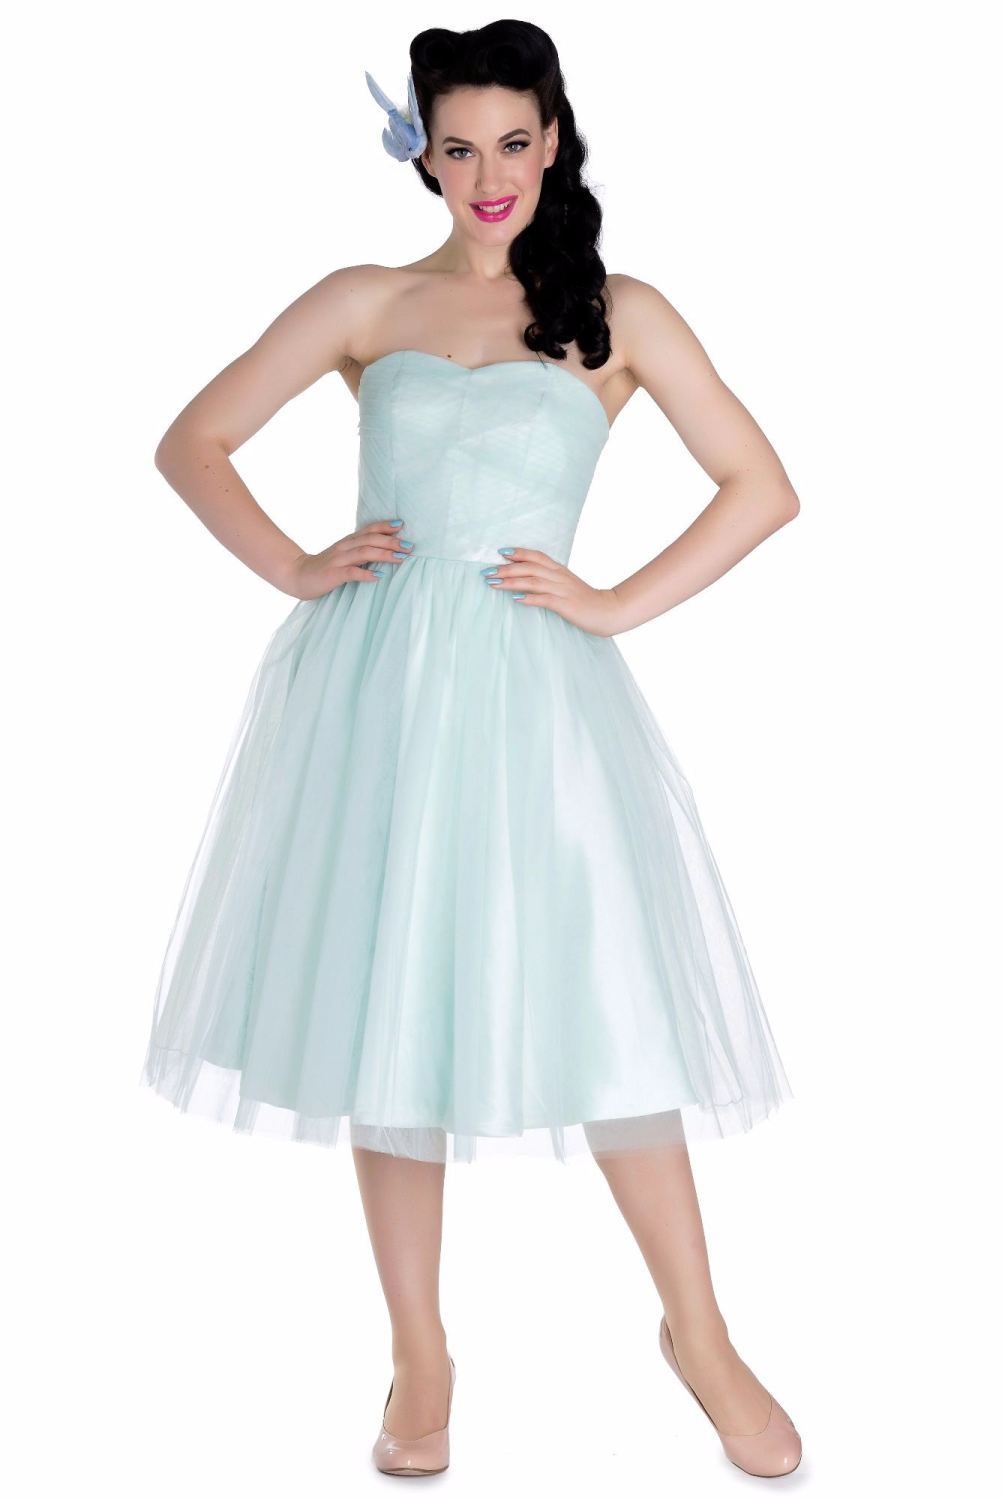 Hell Bunny Tamara 50s Party, Prom, Wedding Dress - Mint